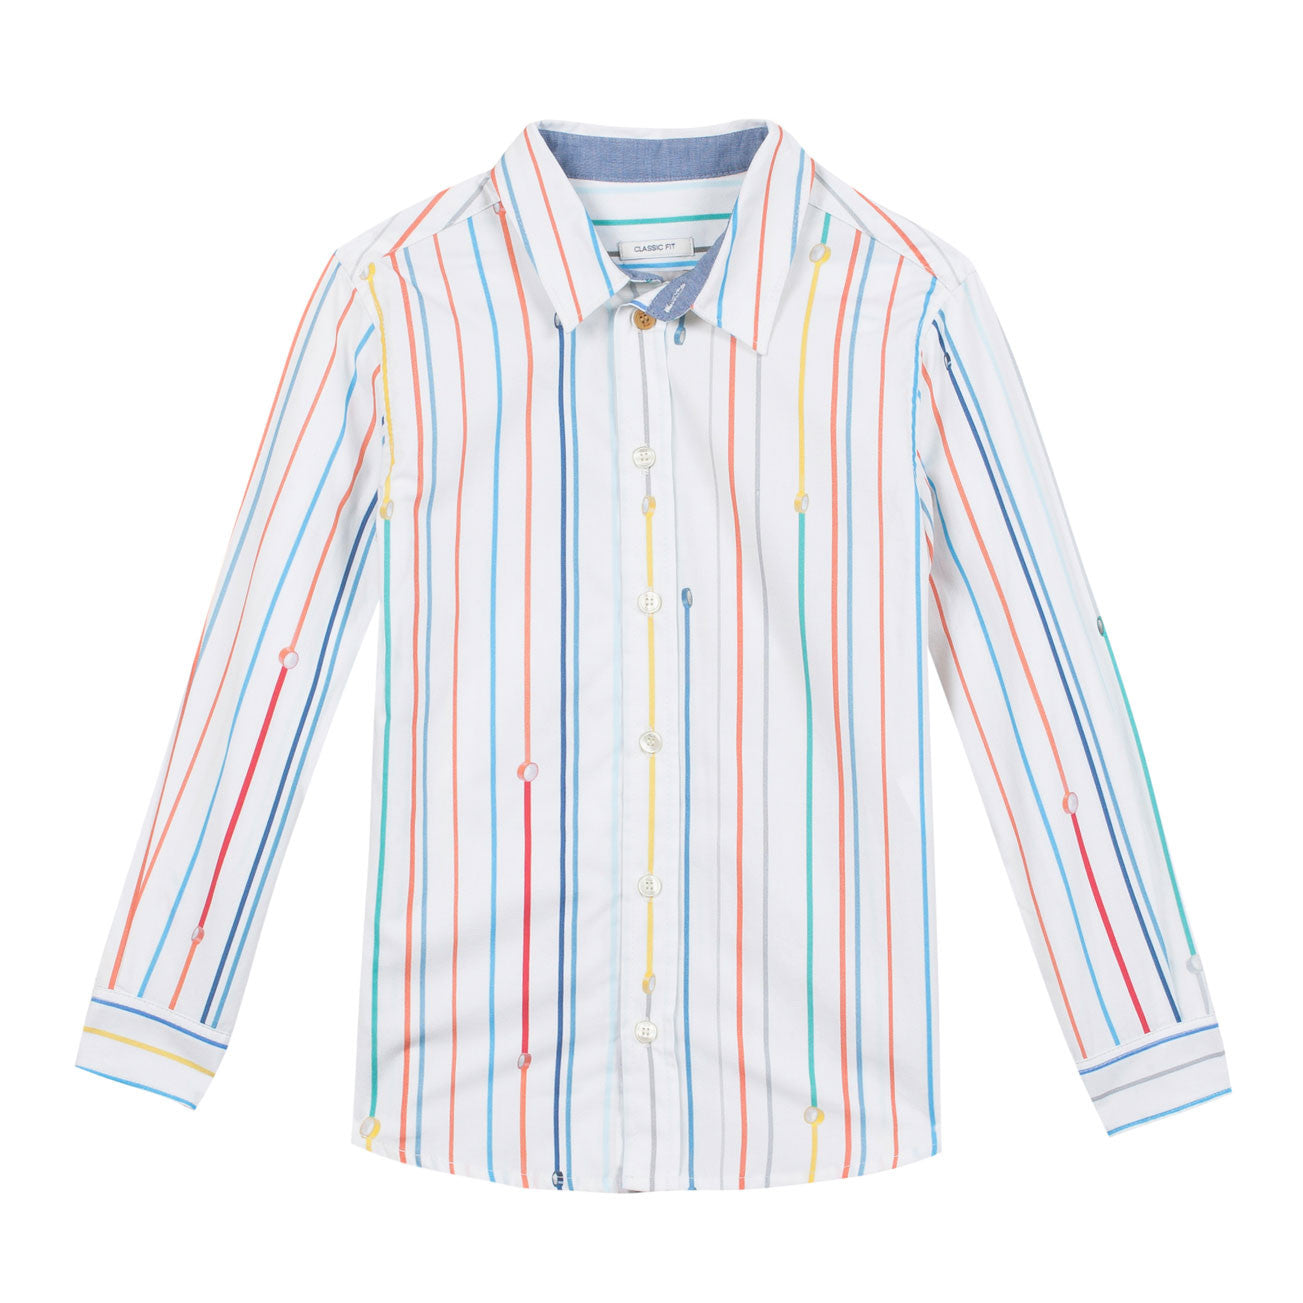 Paul Smith Modern Stripe Shirt - Ladida